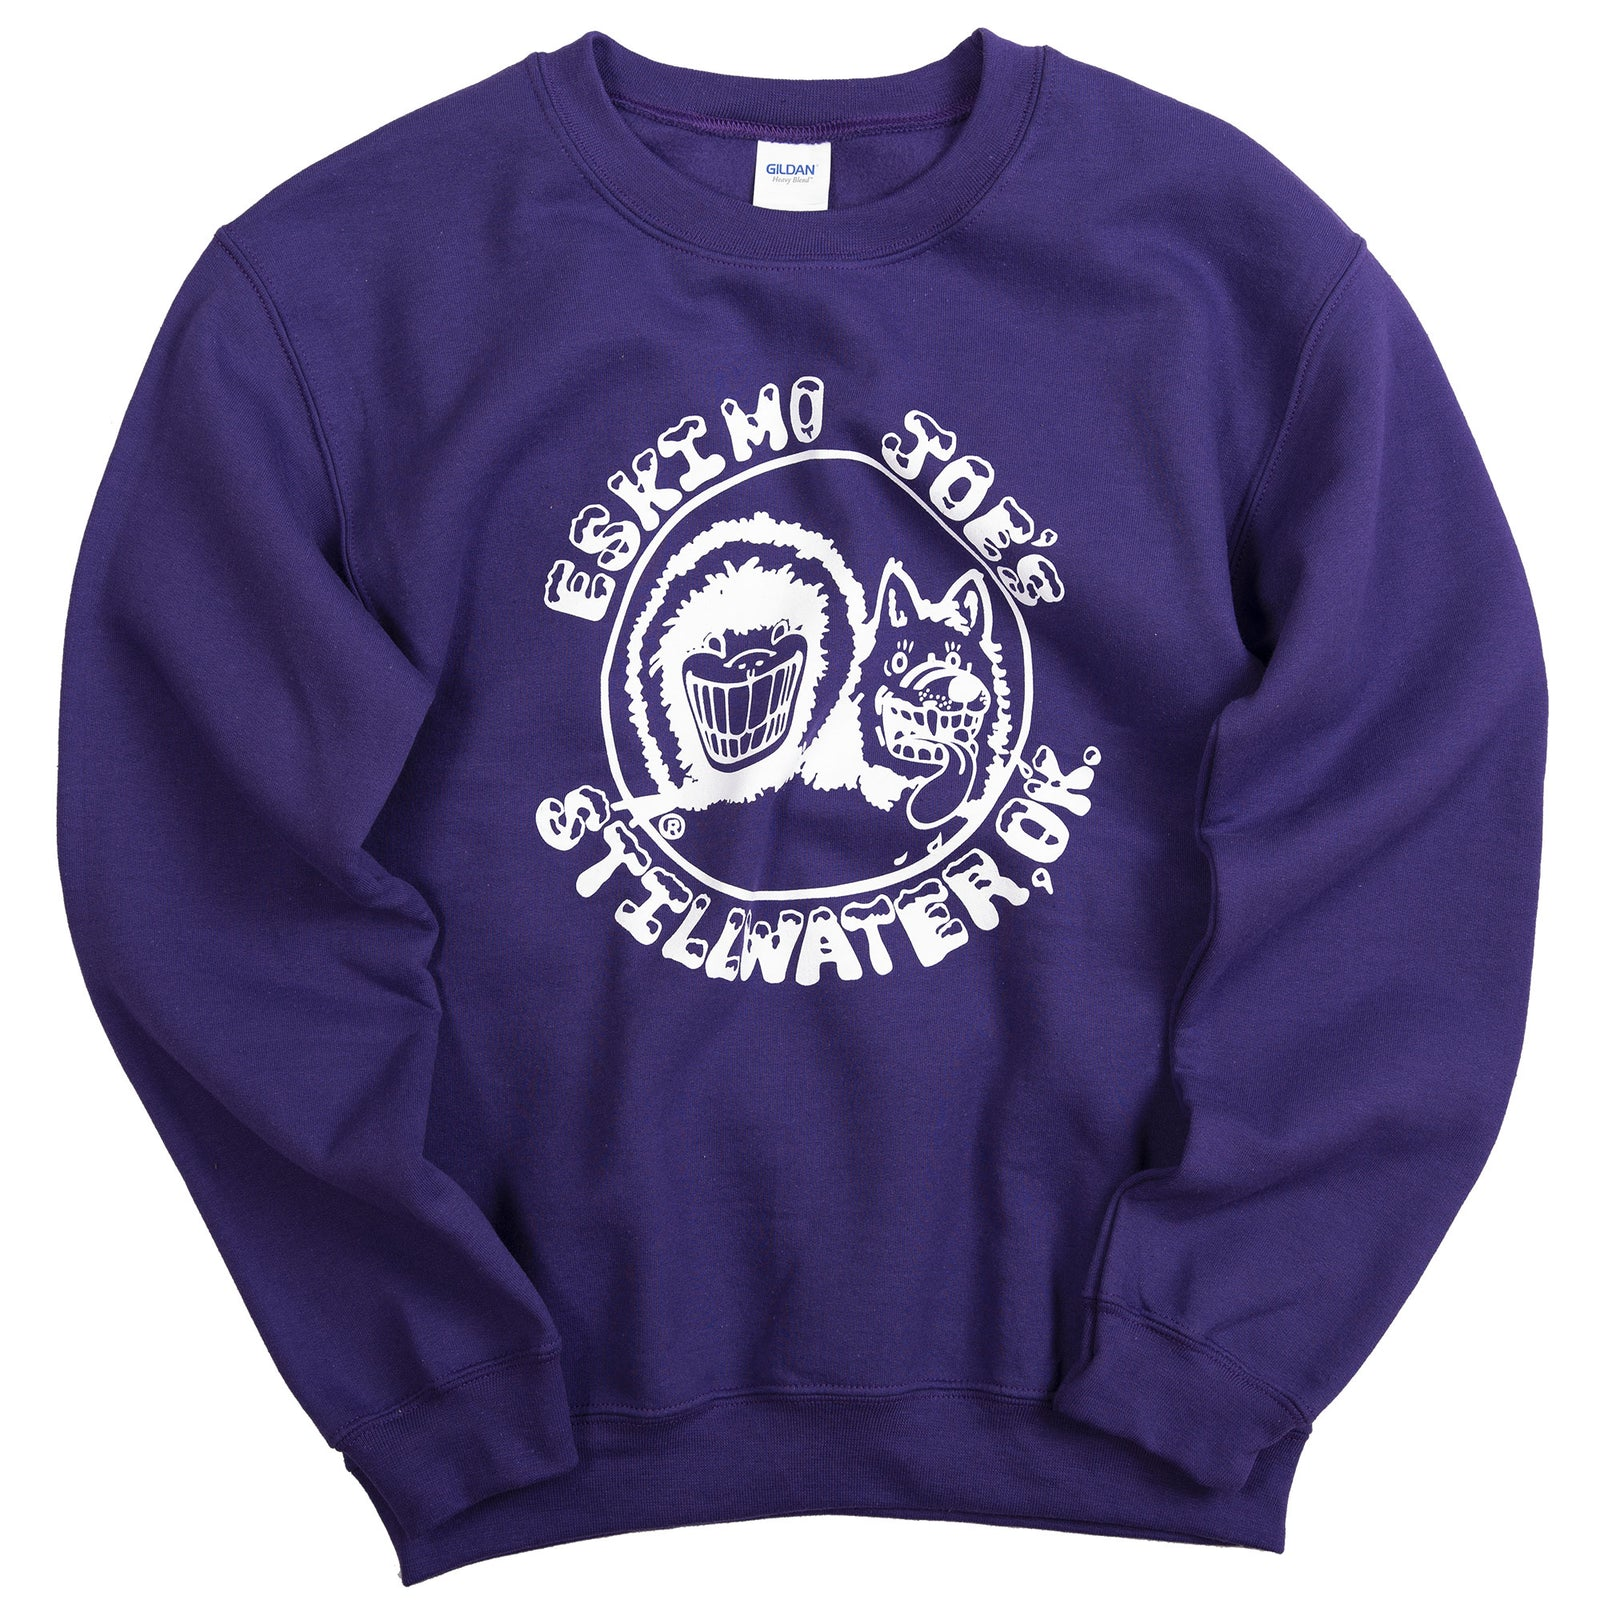 LIGHTWEIGHT ADULT SWEAT SHIRT - LAS - Eskimo Joe's Clothes